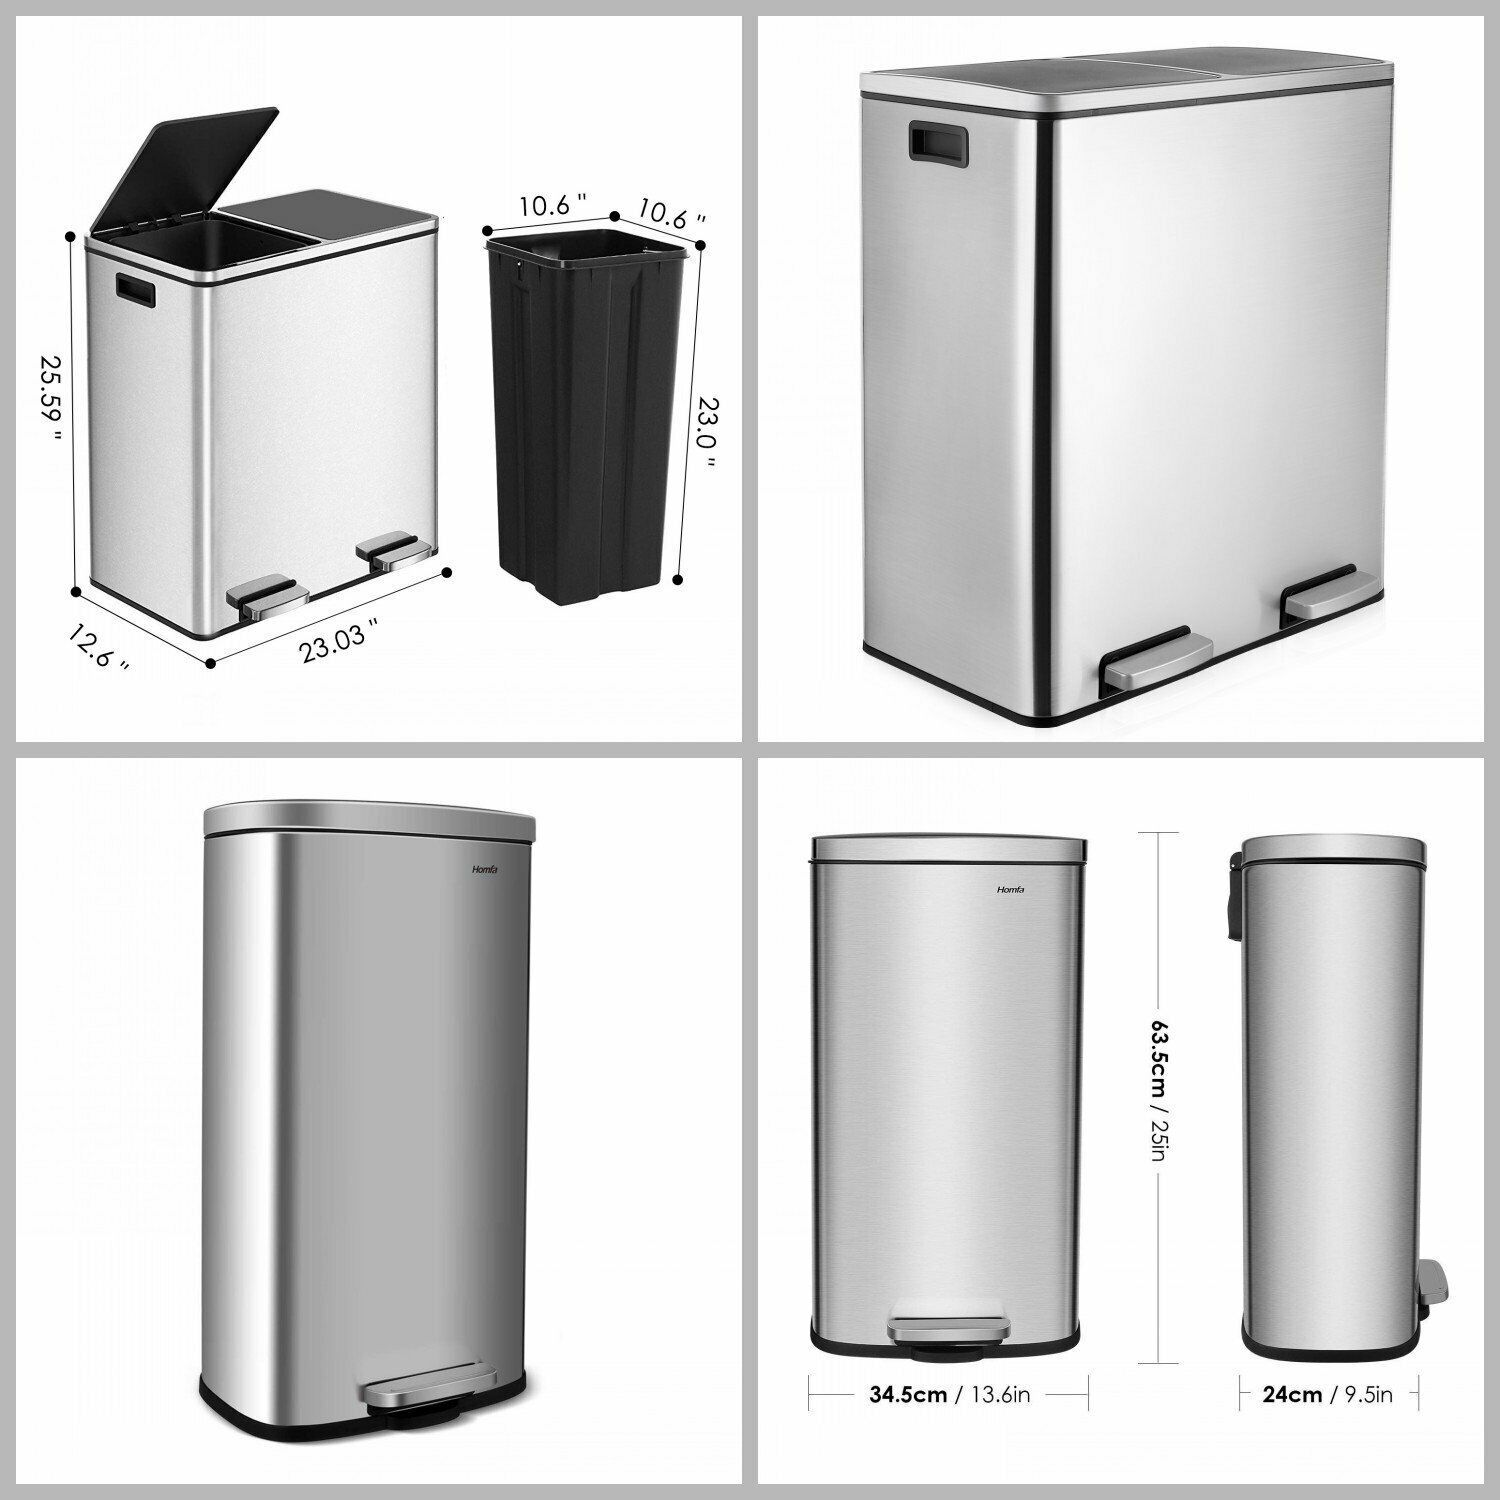 Garbage Can Garbage Can Ideas Garbage Can Garbagecan 30 L 60 L Step Trash Can Garbage Bin L Kitchen Trash Cans Bathroom Trash Can Stainless Steel Kitchen